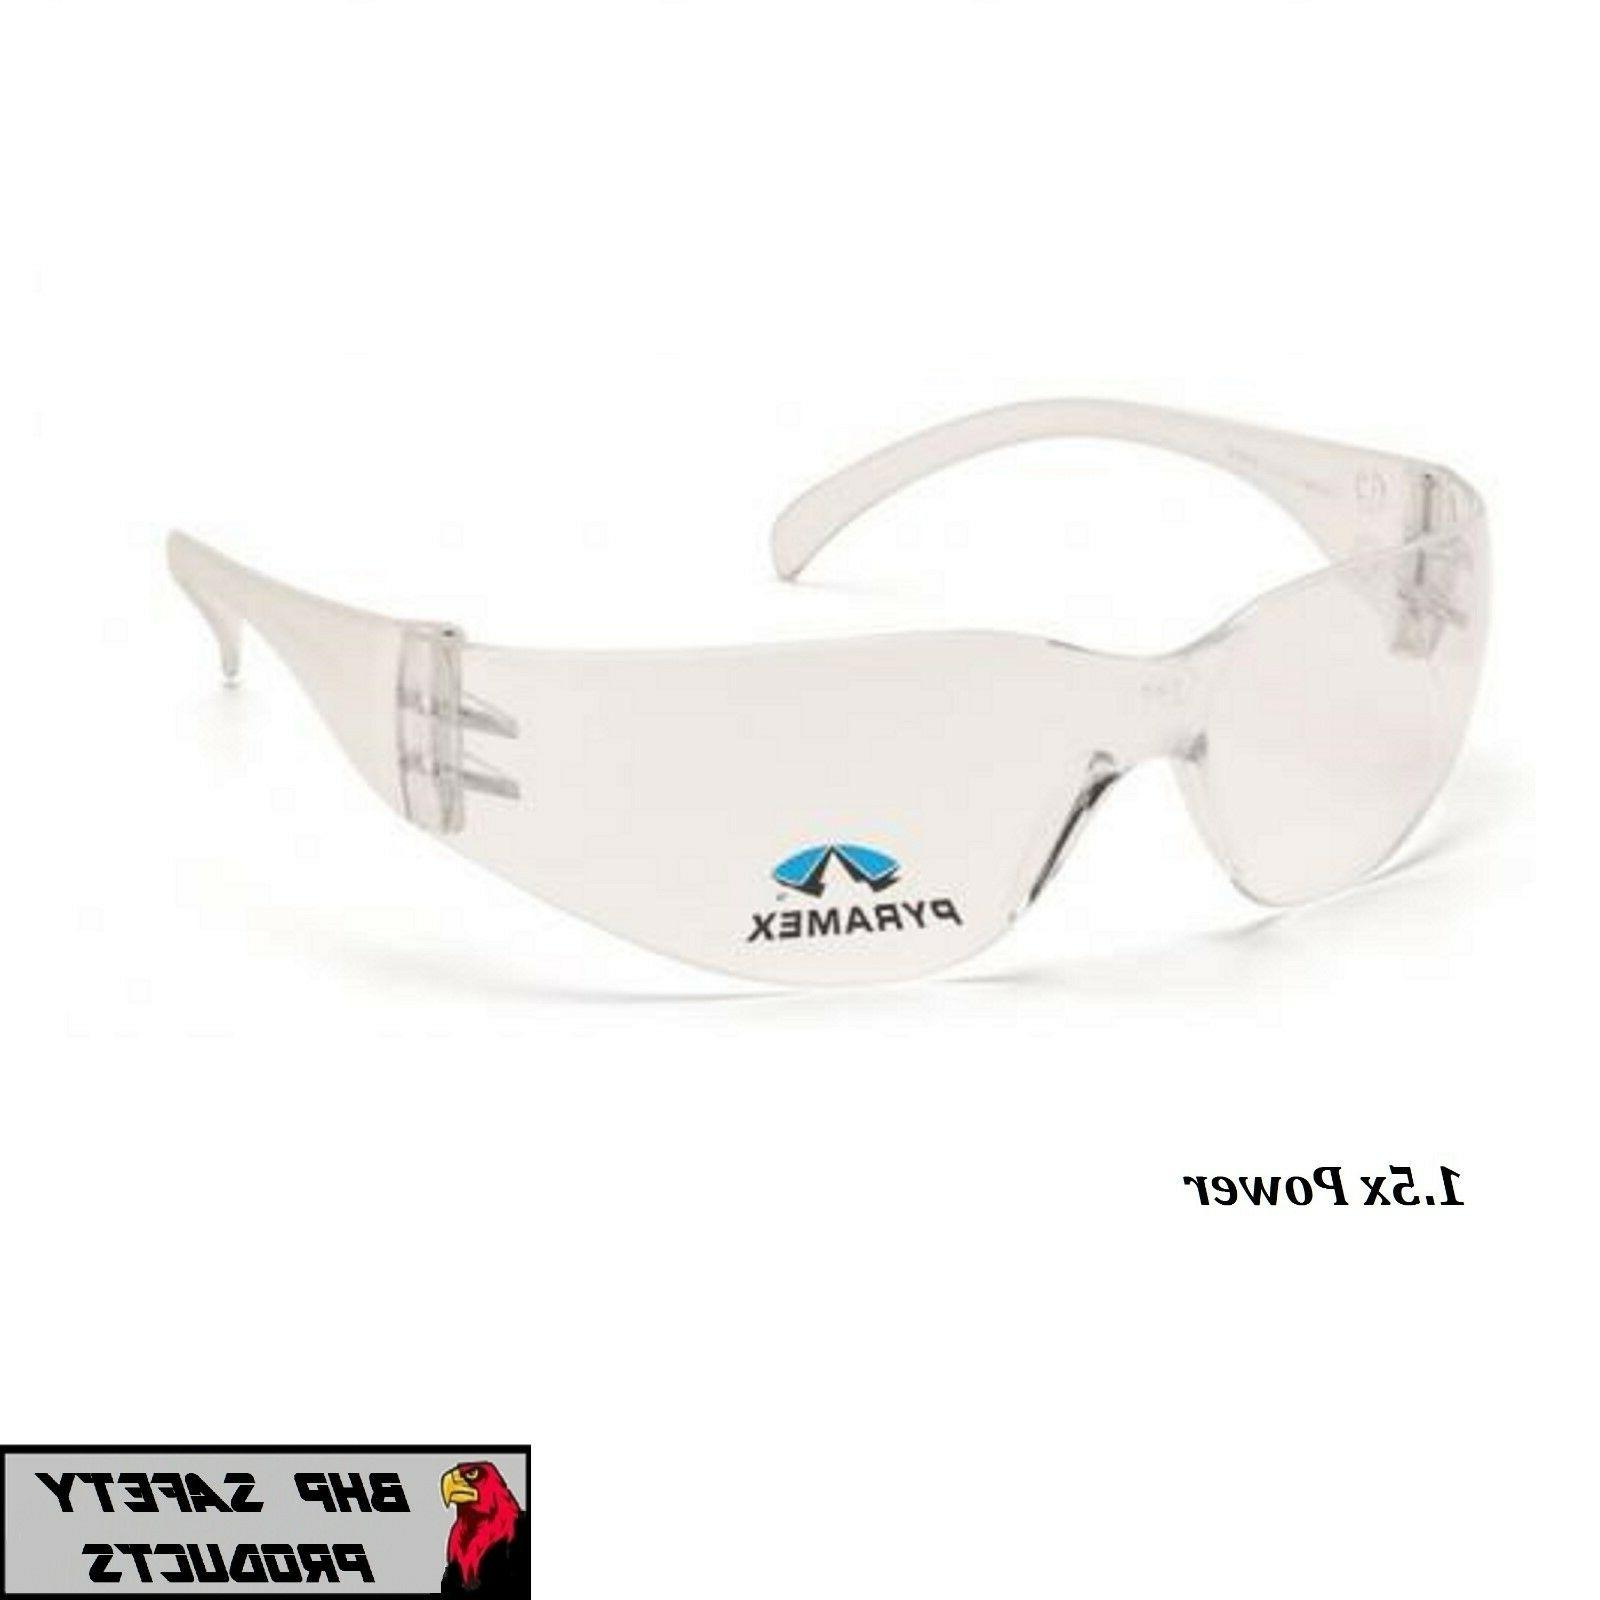 PYRAMEX INTRUDER READER SAFETY GLASSES BIFOCAL CLEAR 1.5 LEN